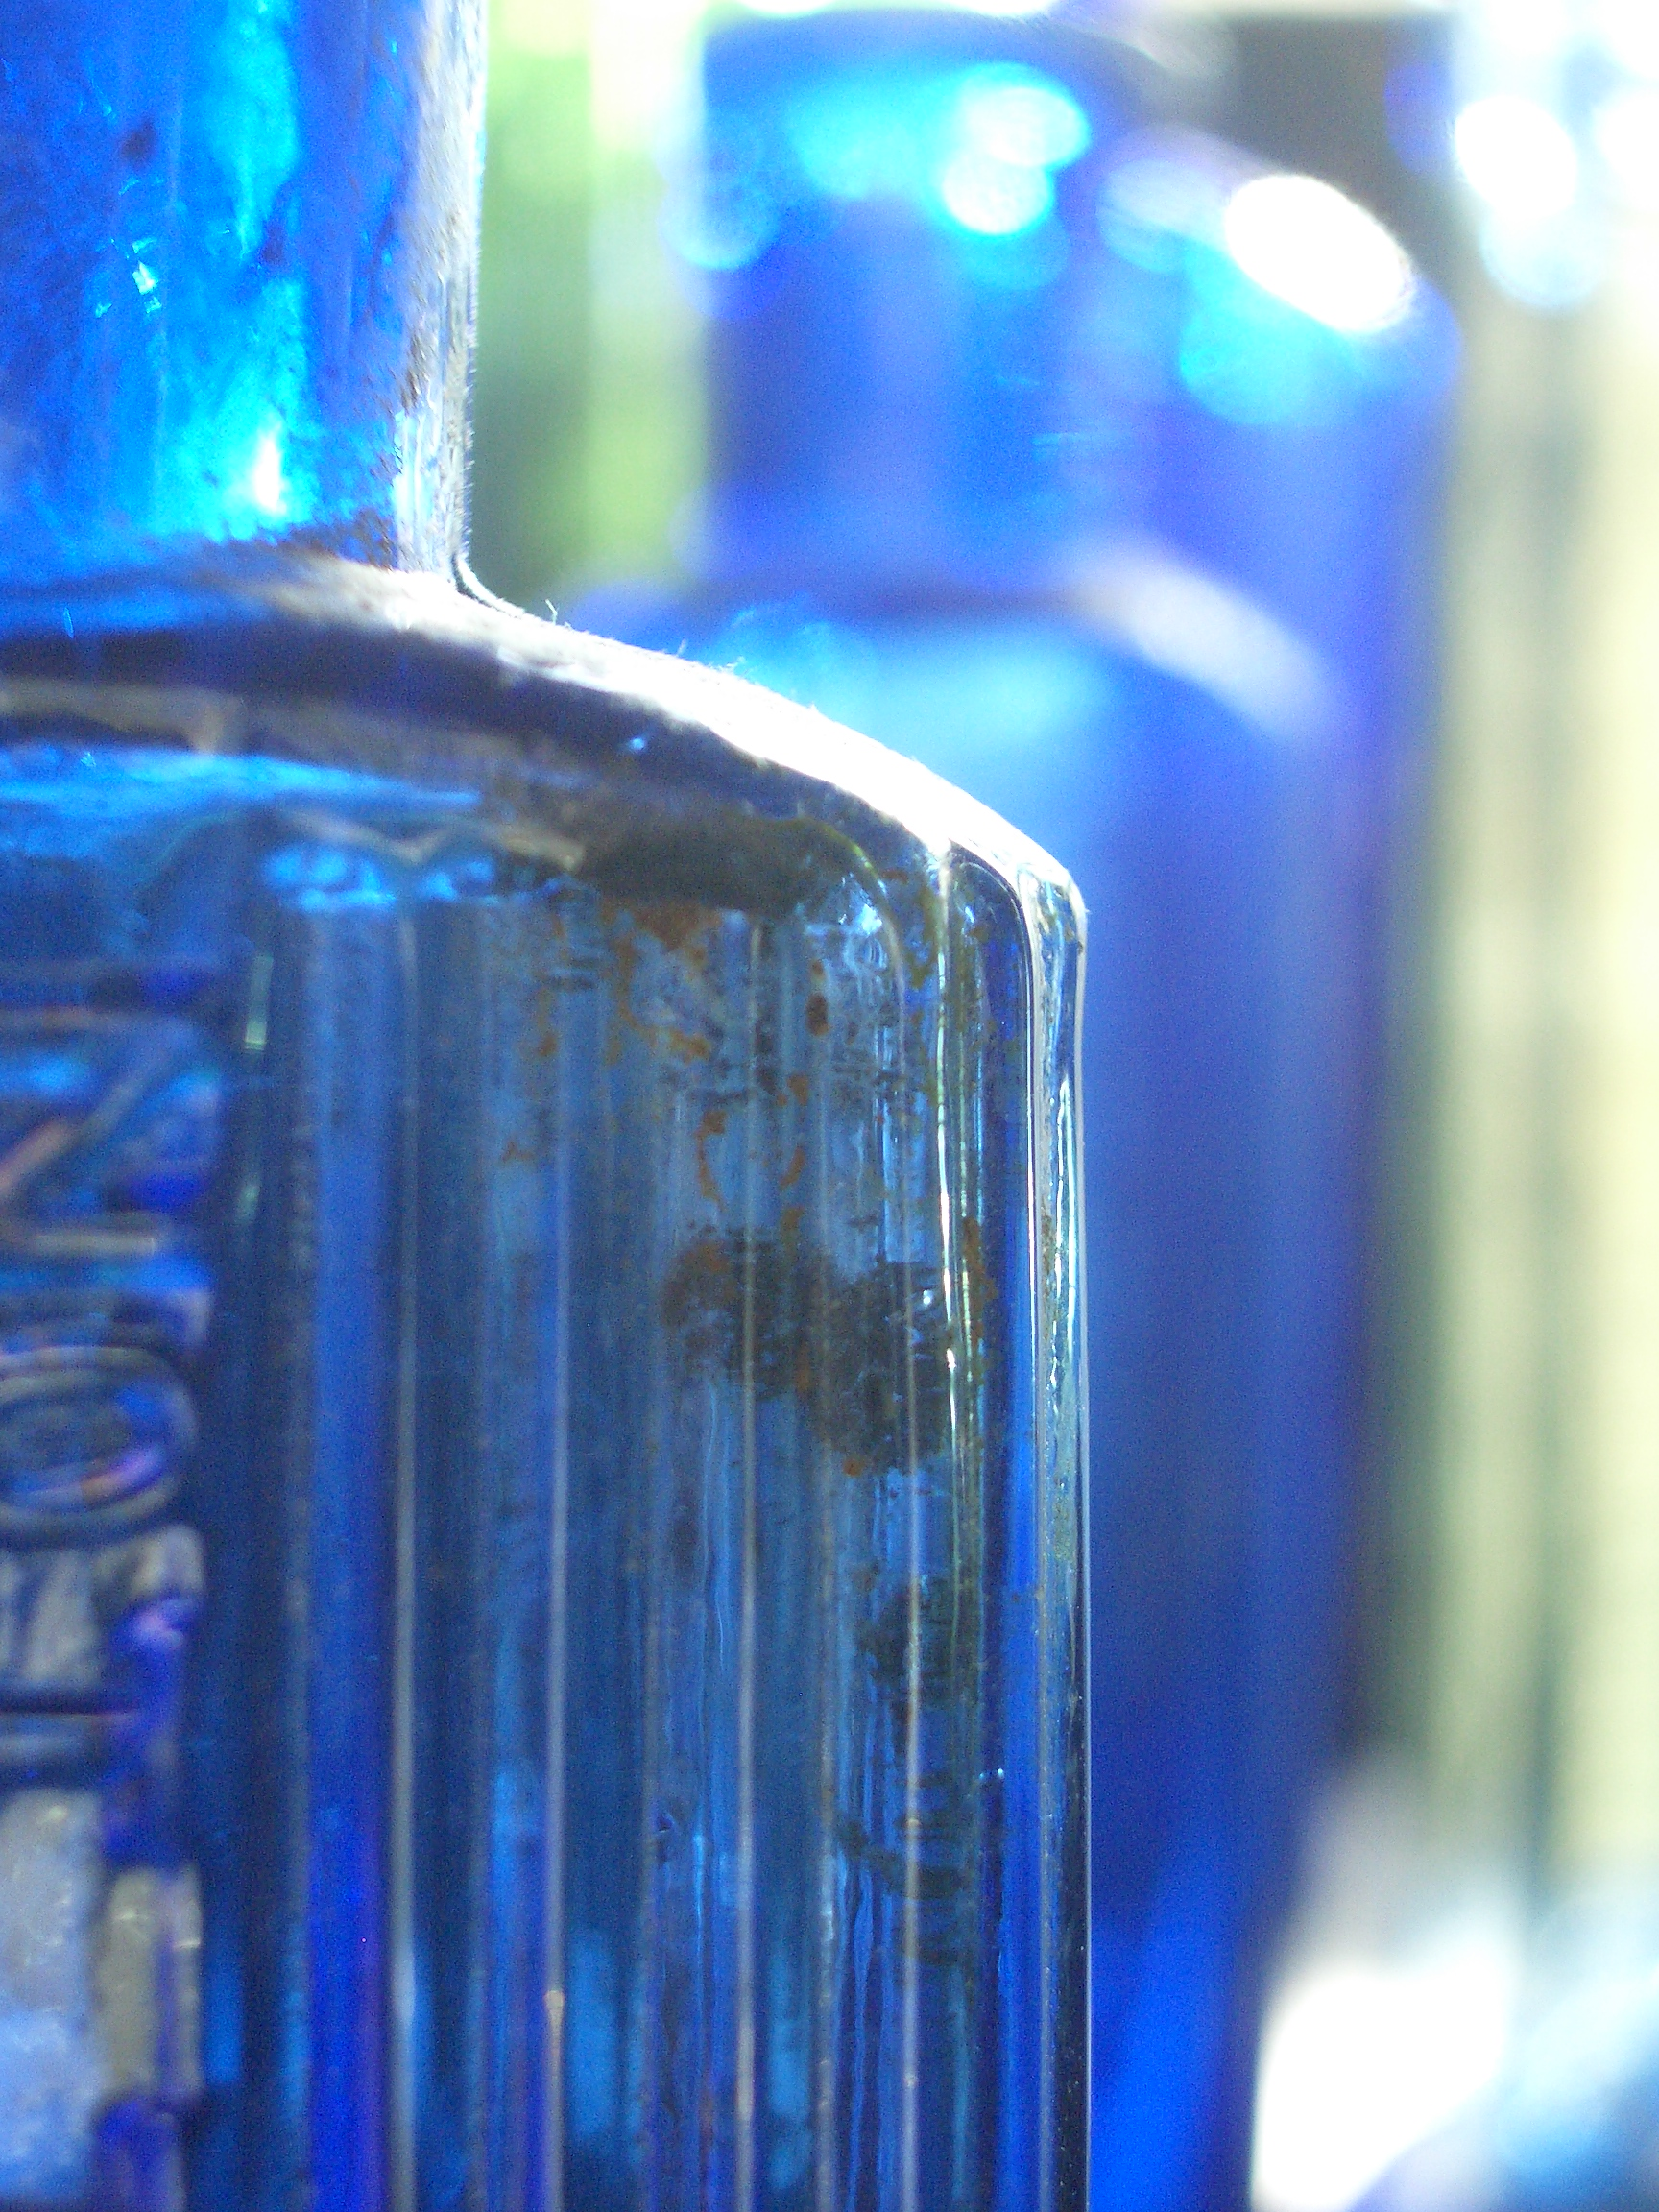 [Picture: Blue antique medicine bottle with strong light 2]